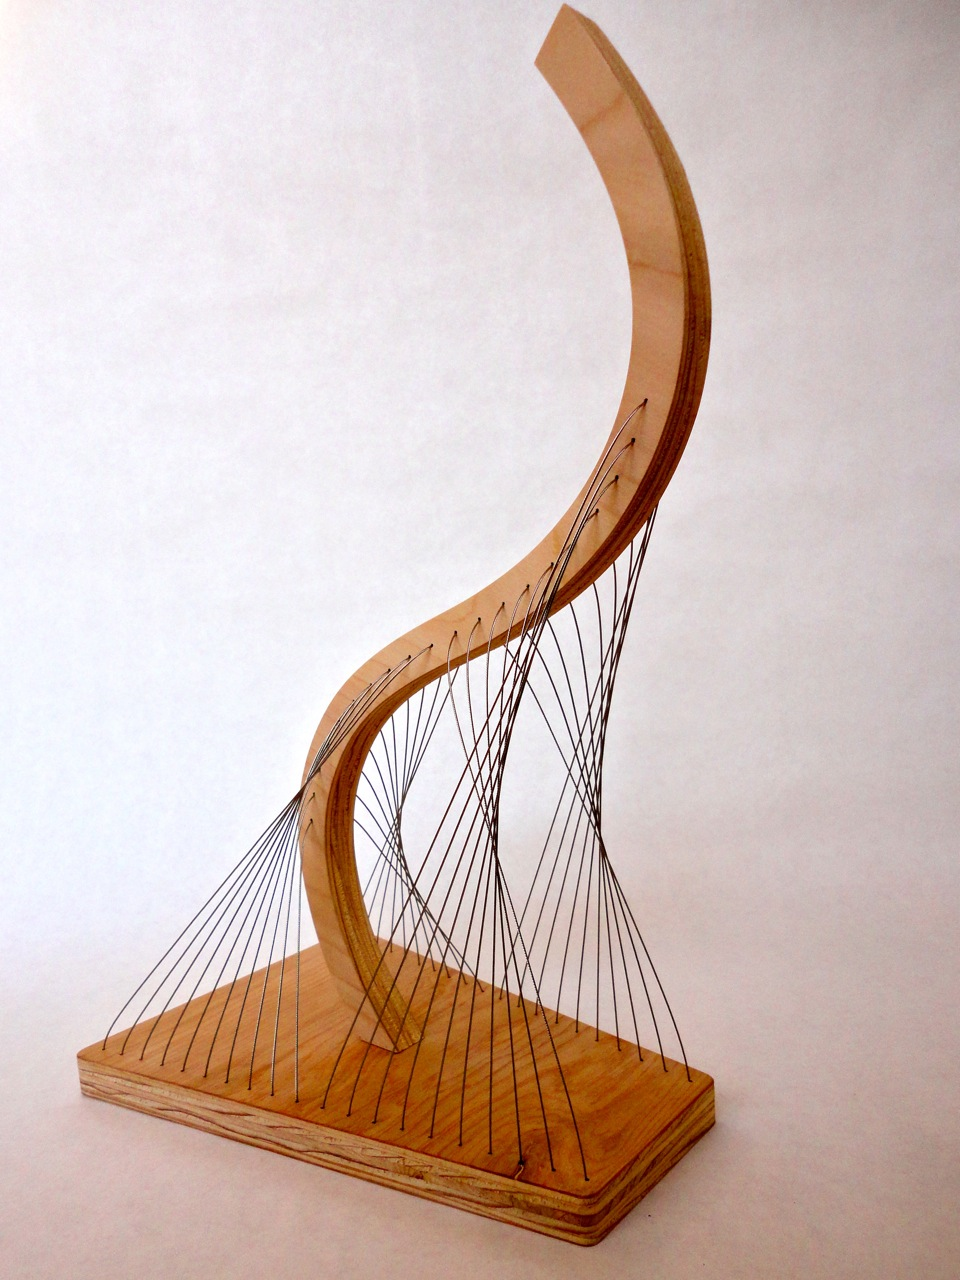 S-Curve Sculpture